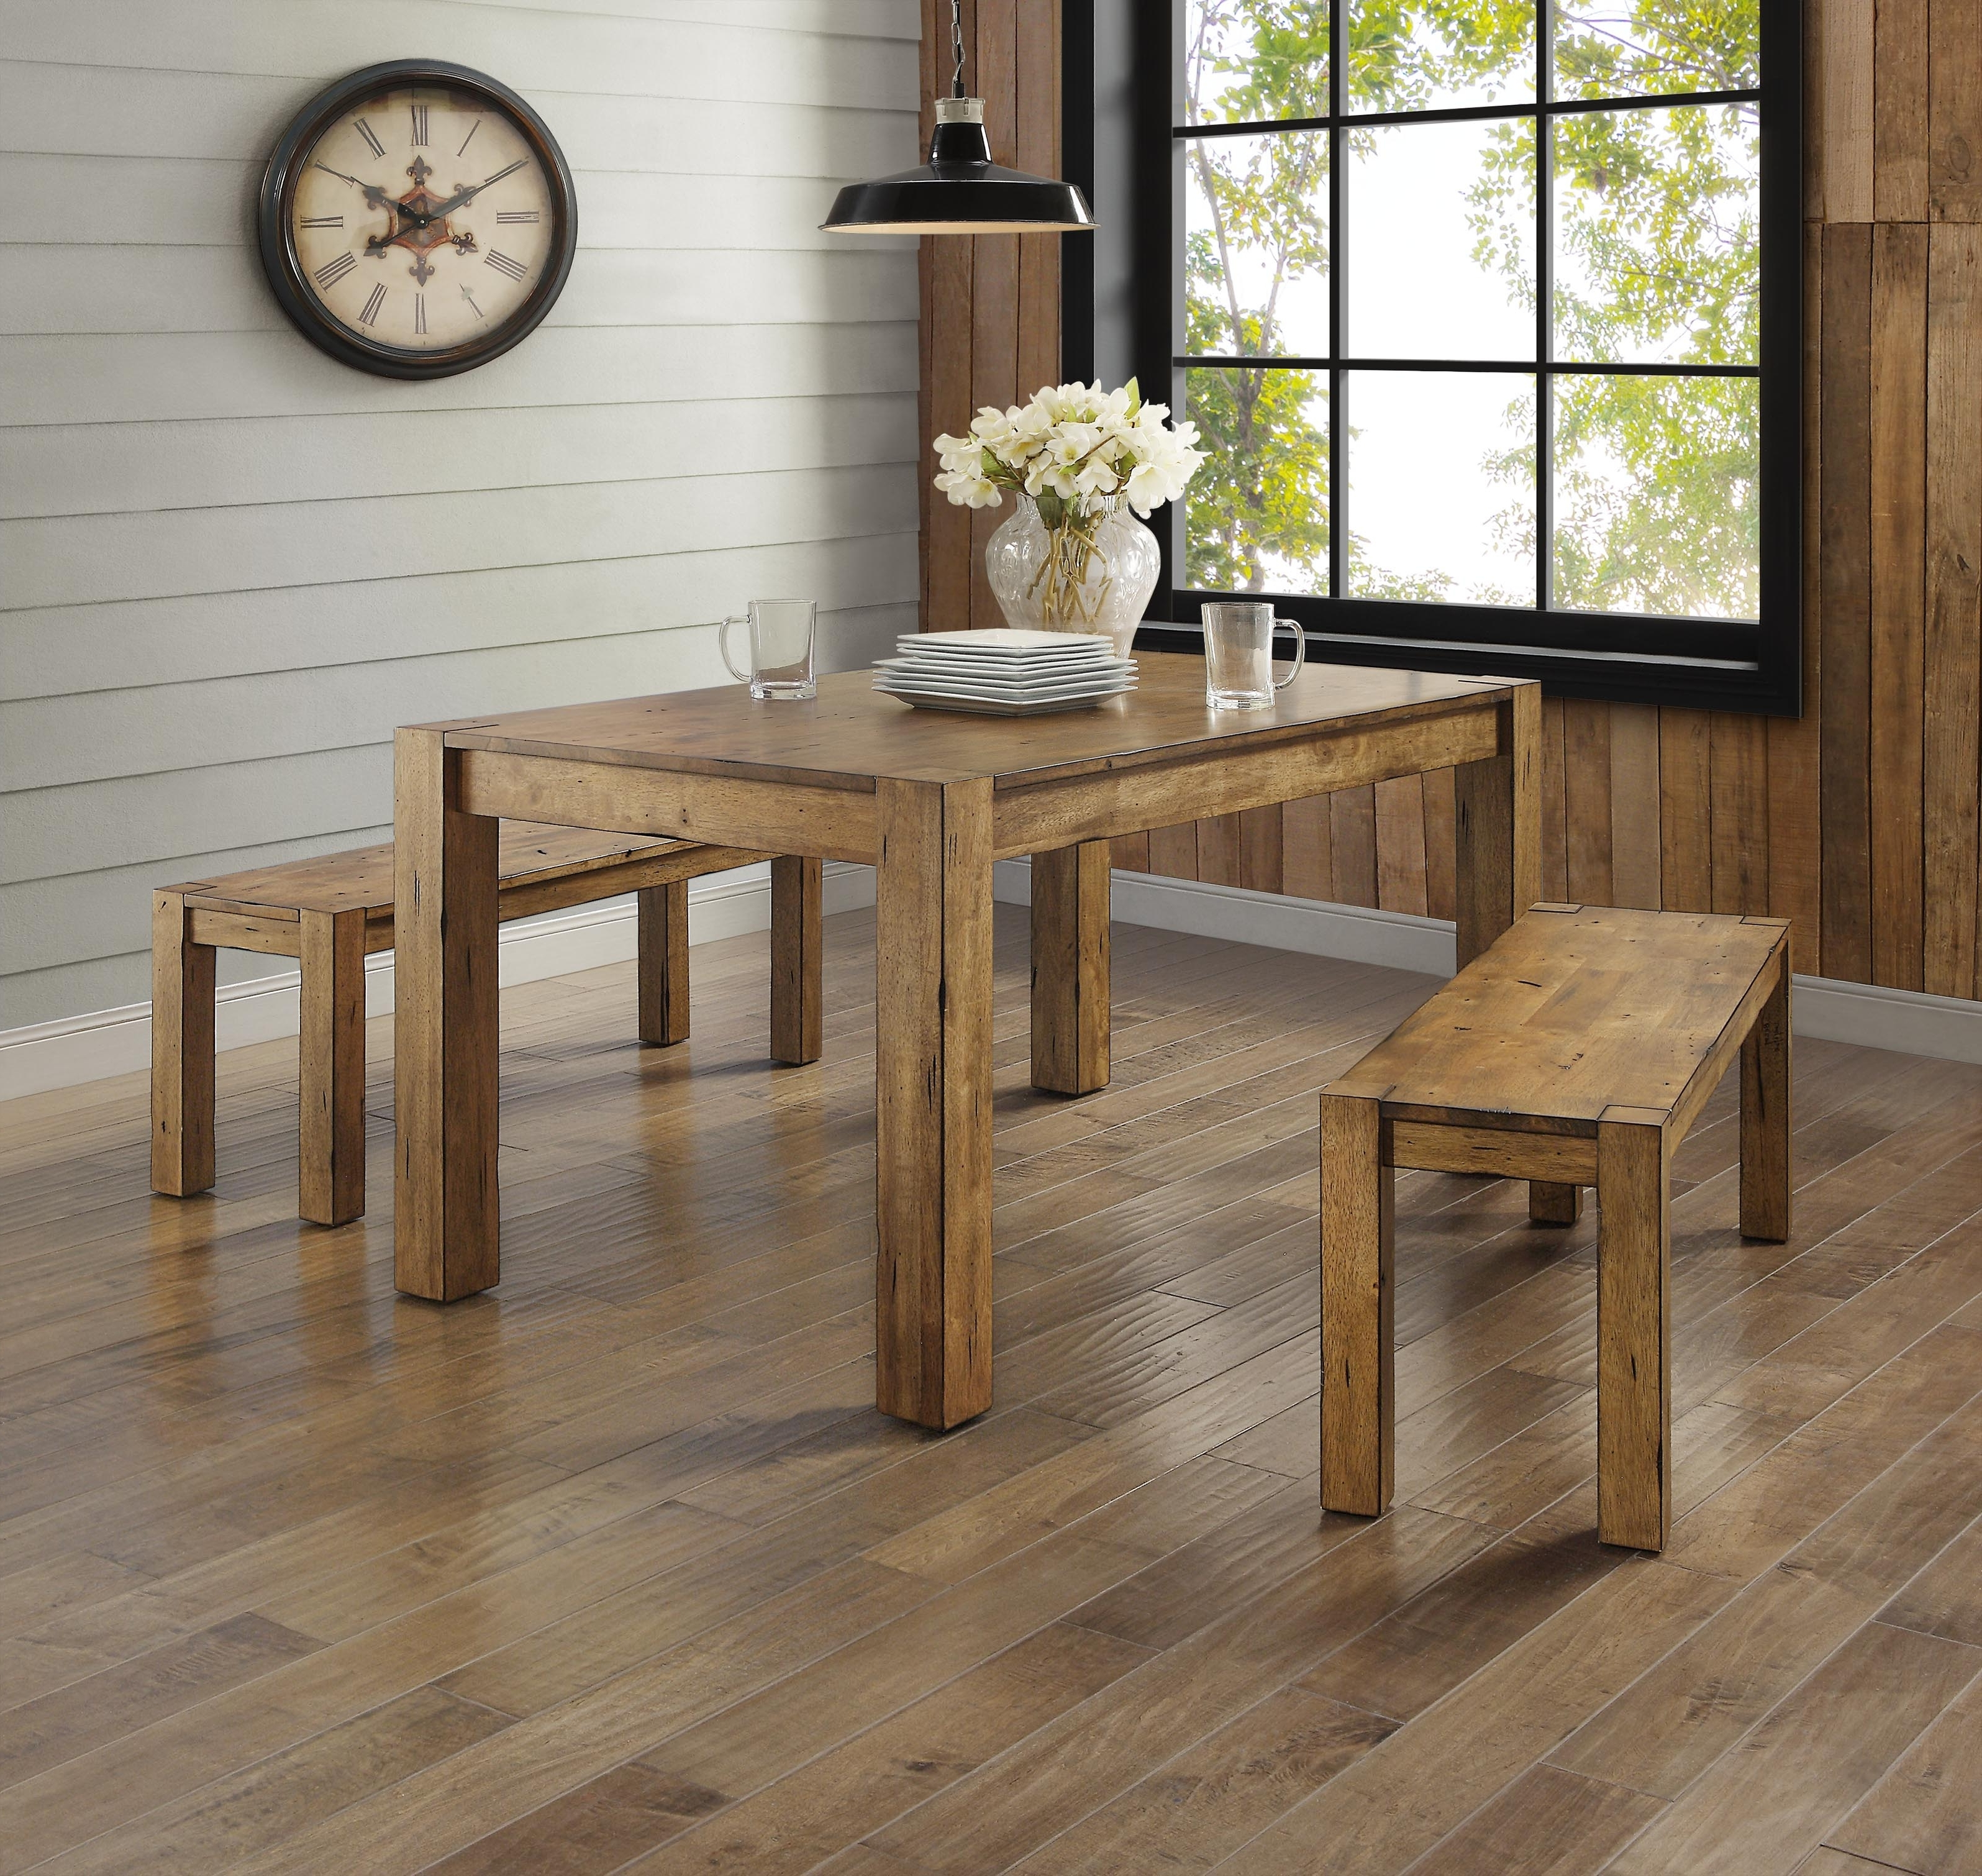 Trendy Better Homes & Gardens Bryant Dining Table, Multiple Finishes Inside Rustic Dining Tables (View 23 of 25)